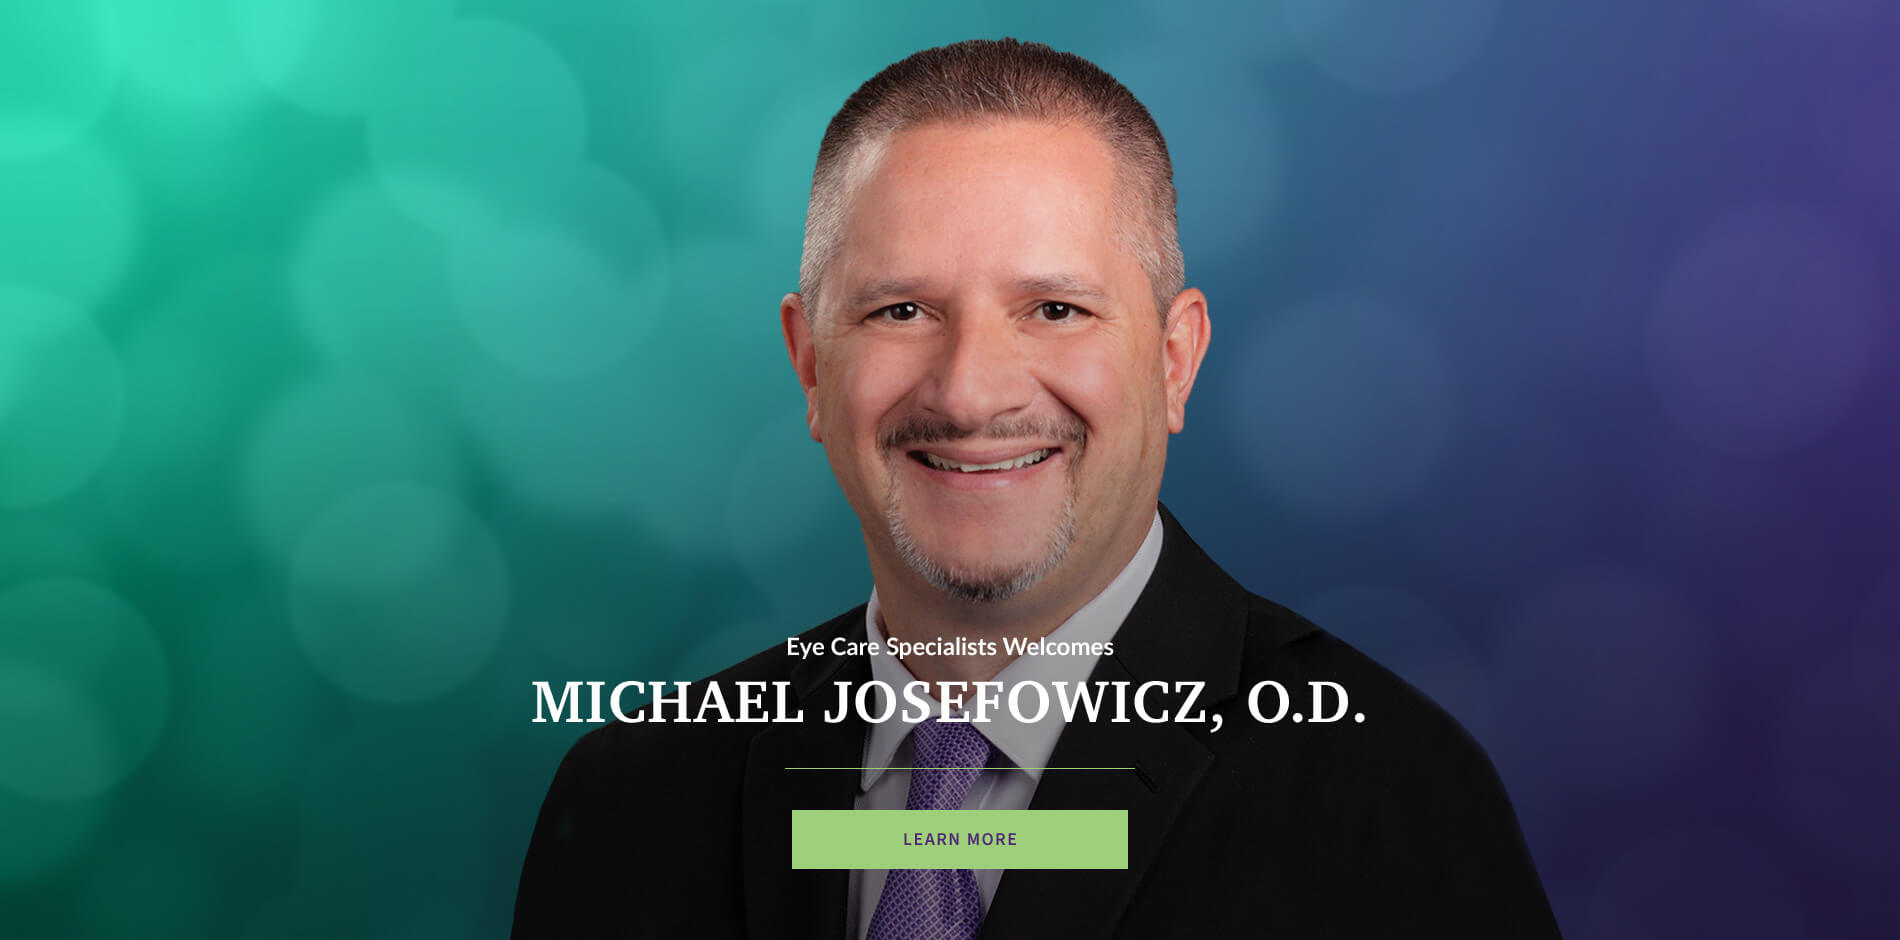 Eye Care Specialists Welcomes Michael Josefowicz, O.D.